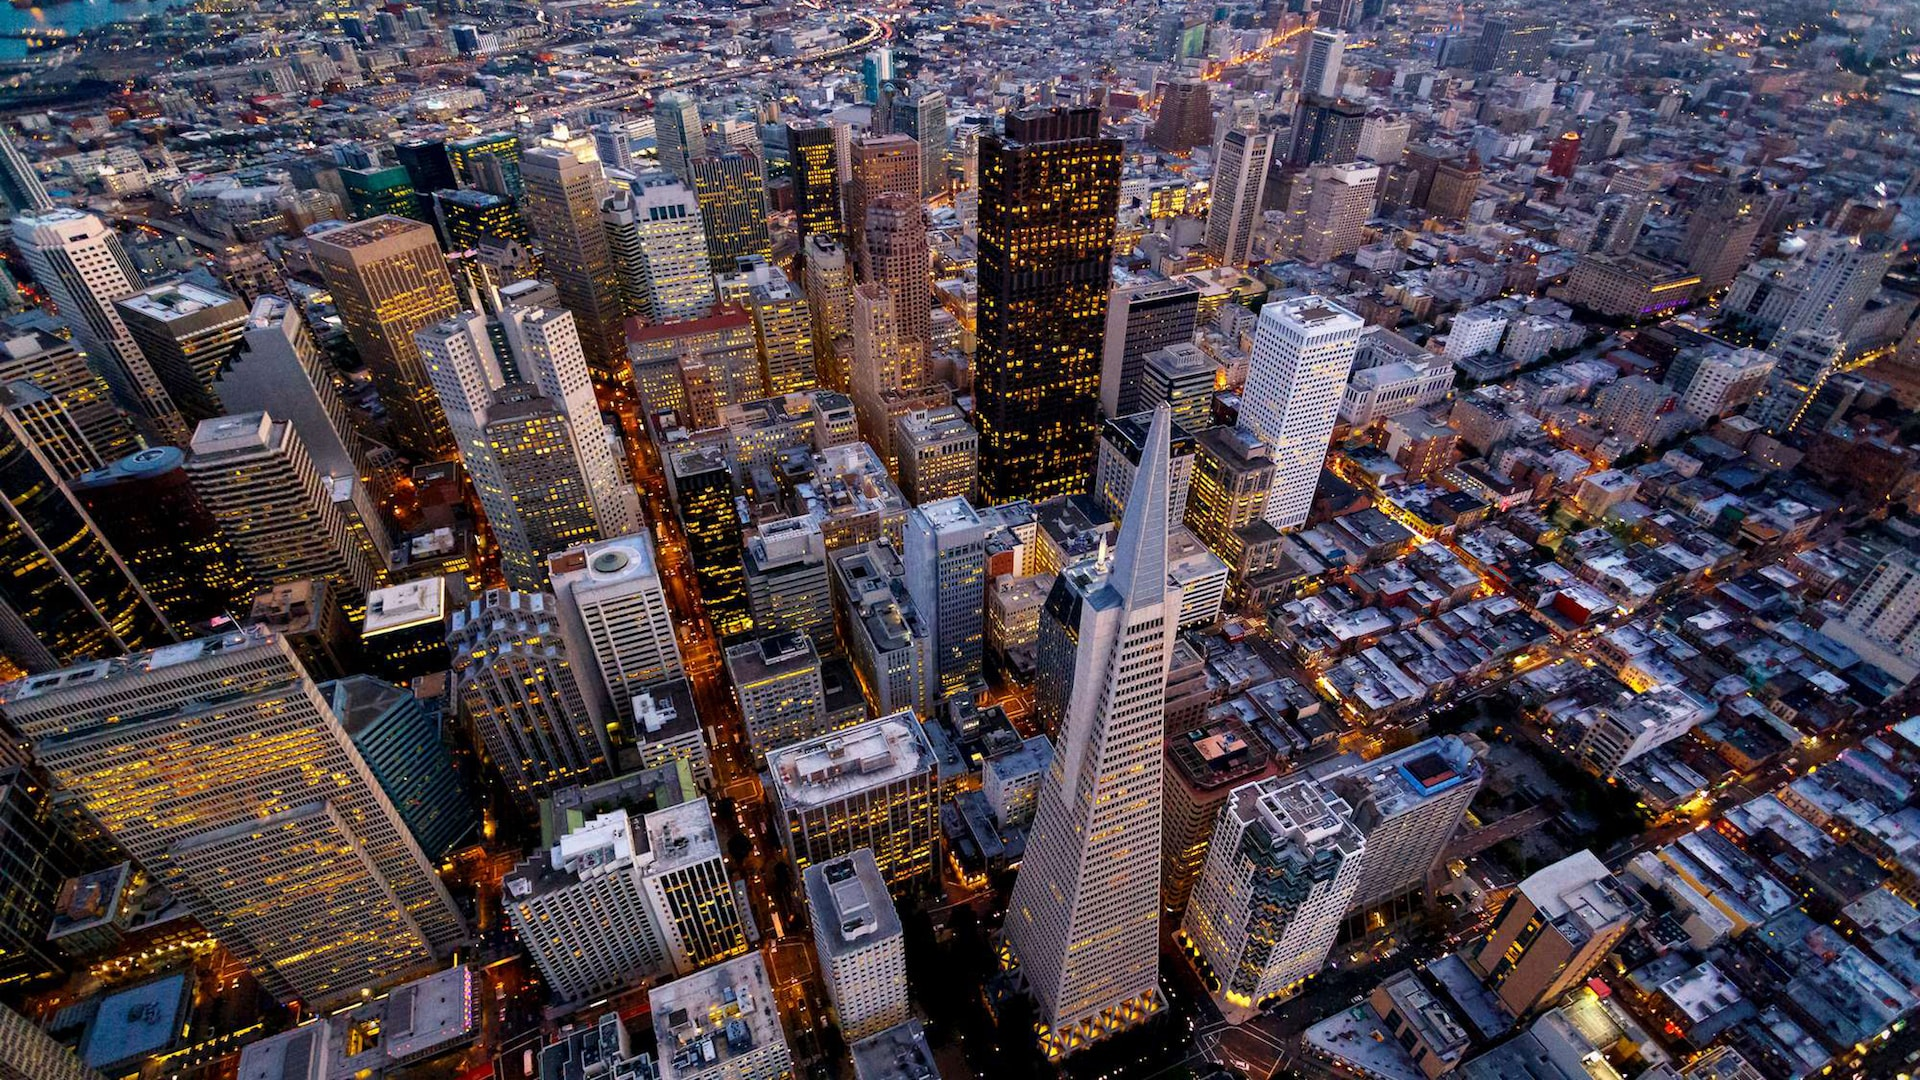 image-looking-down-on-san-francisco-city